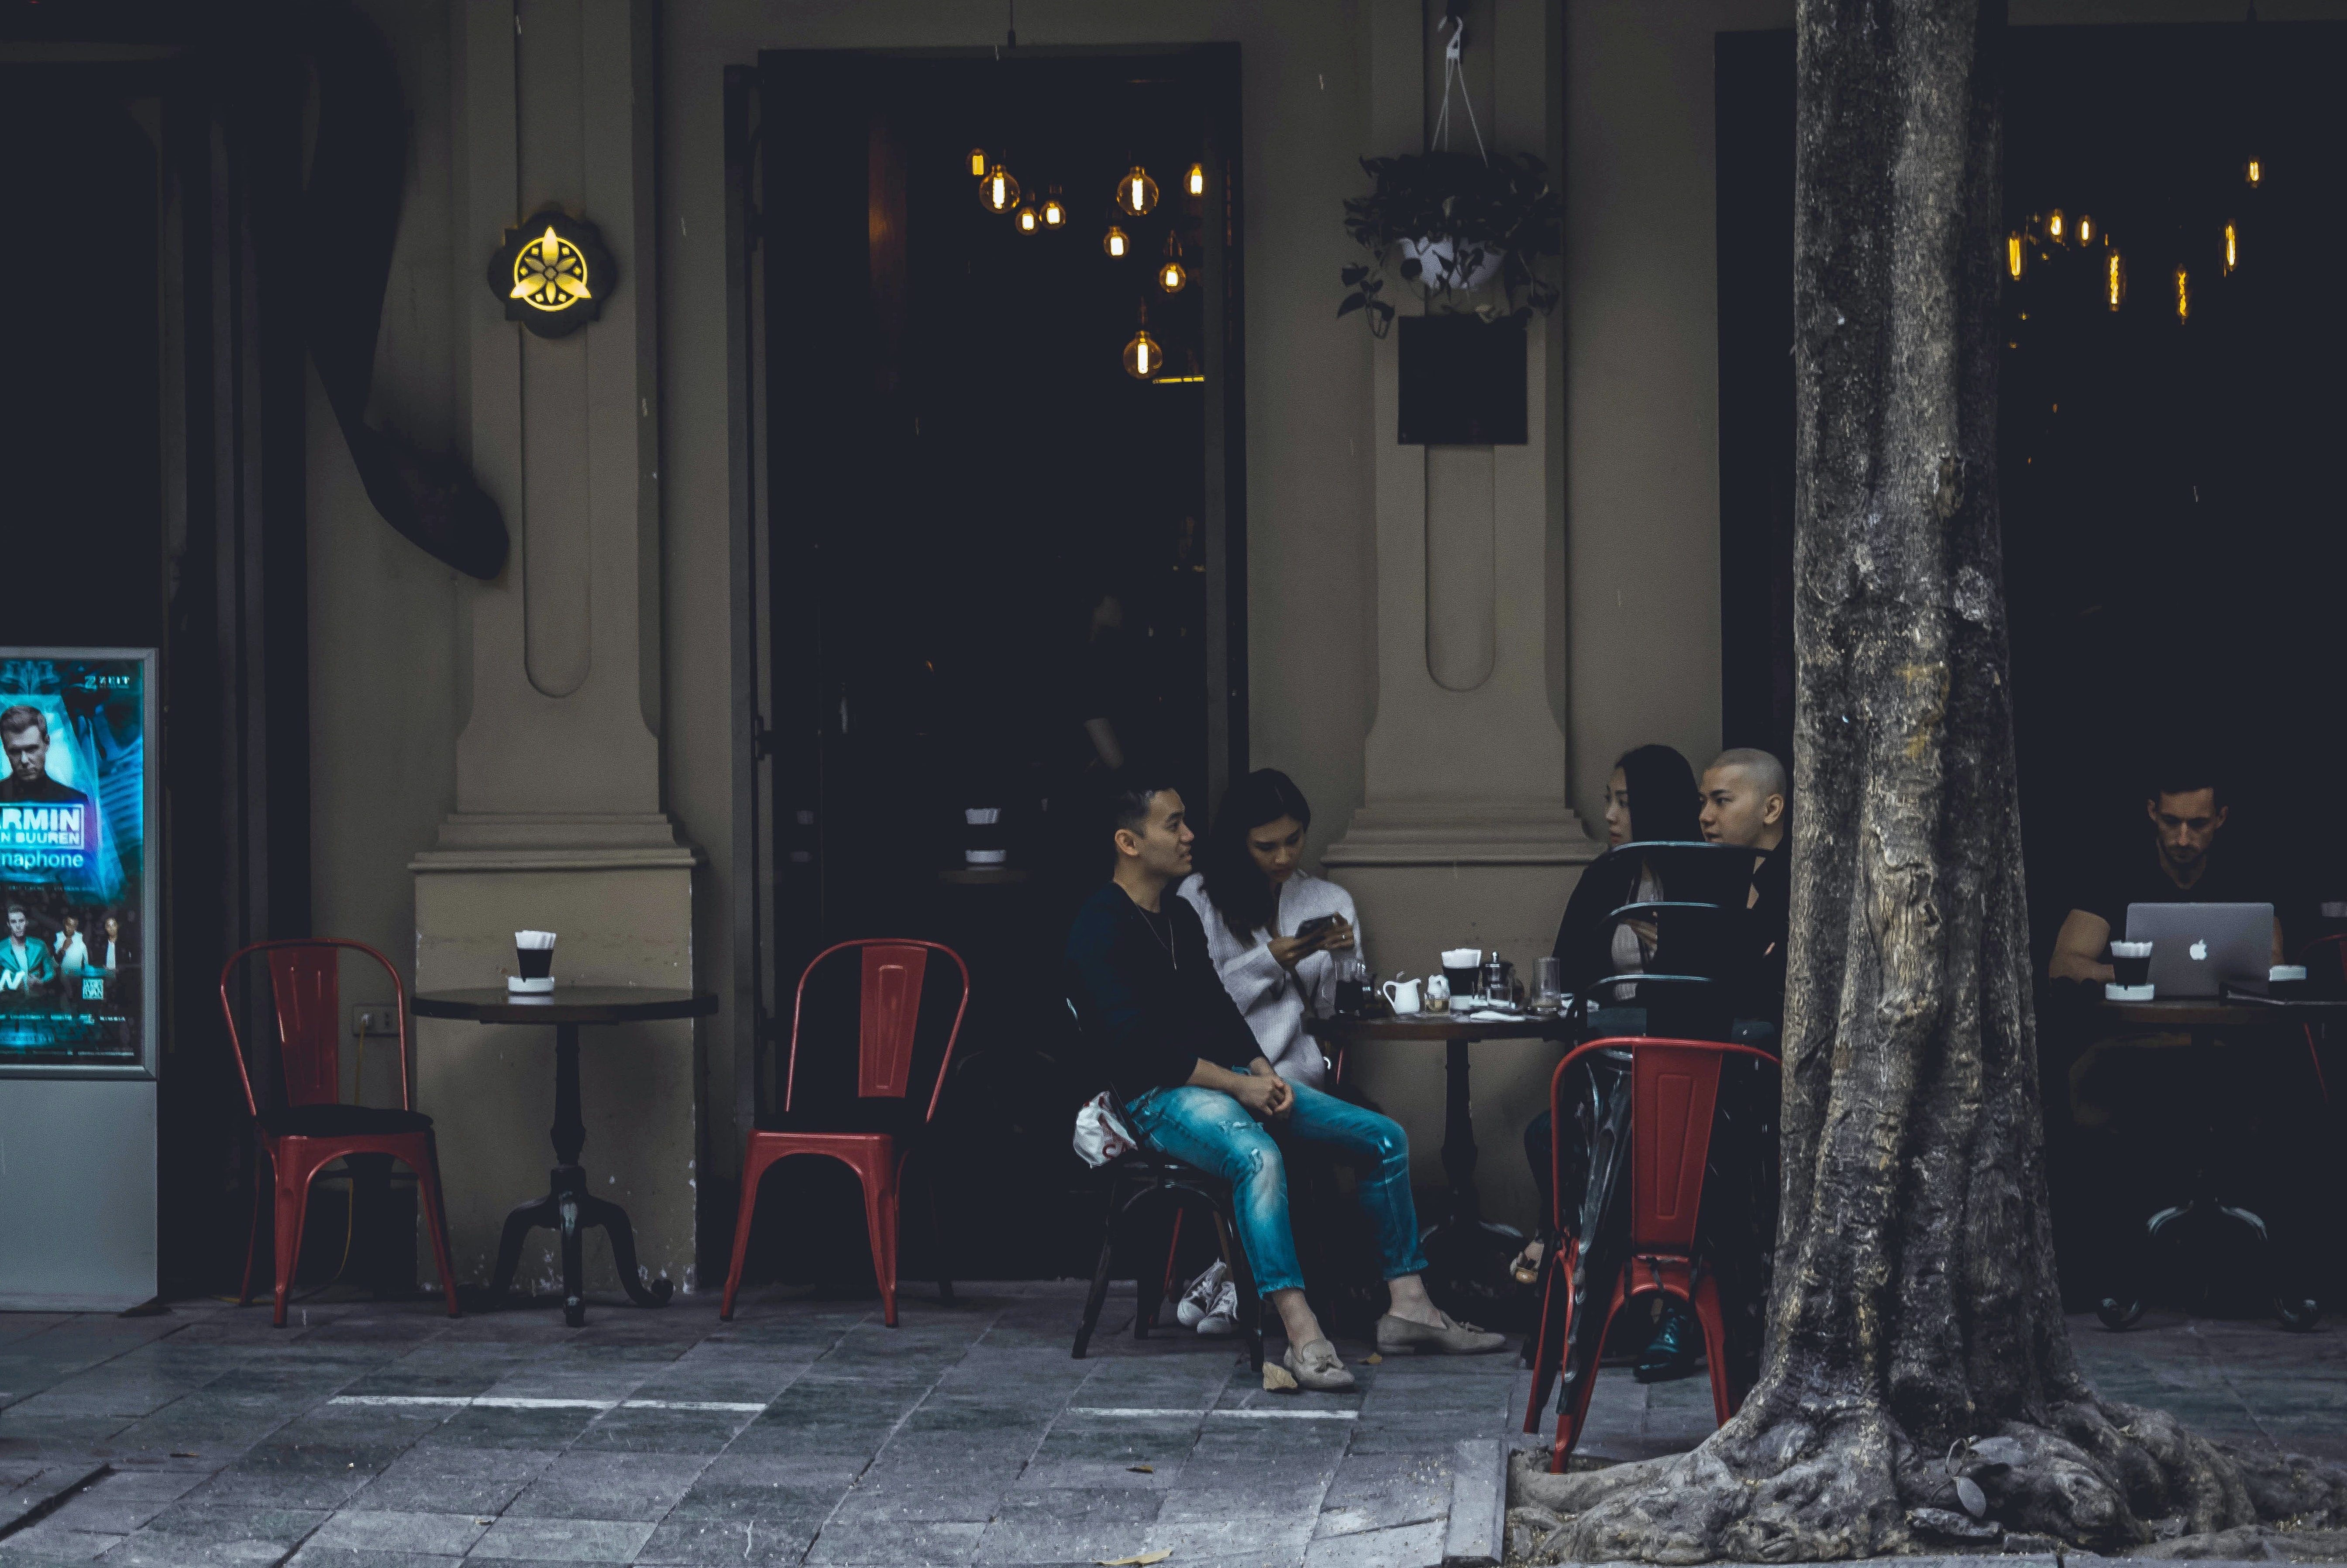 group of people sitting on chair with table in front of building